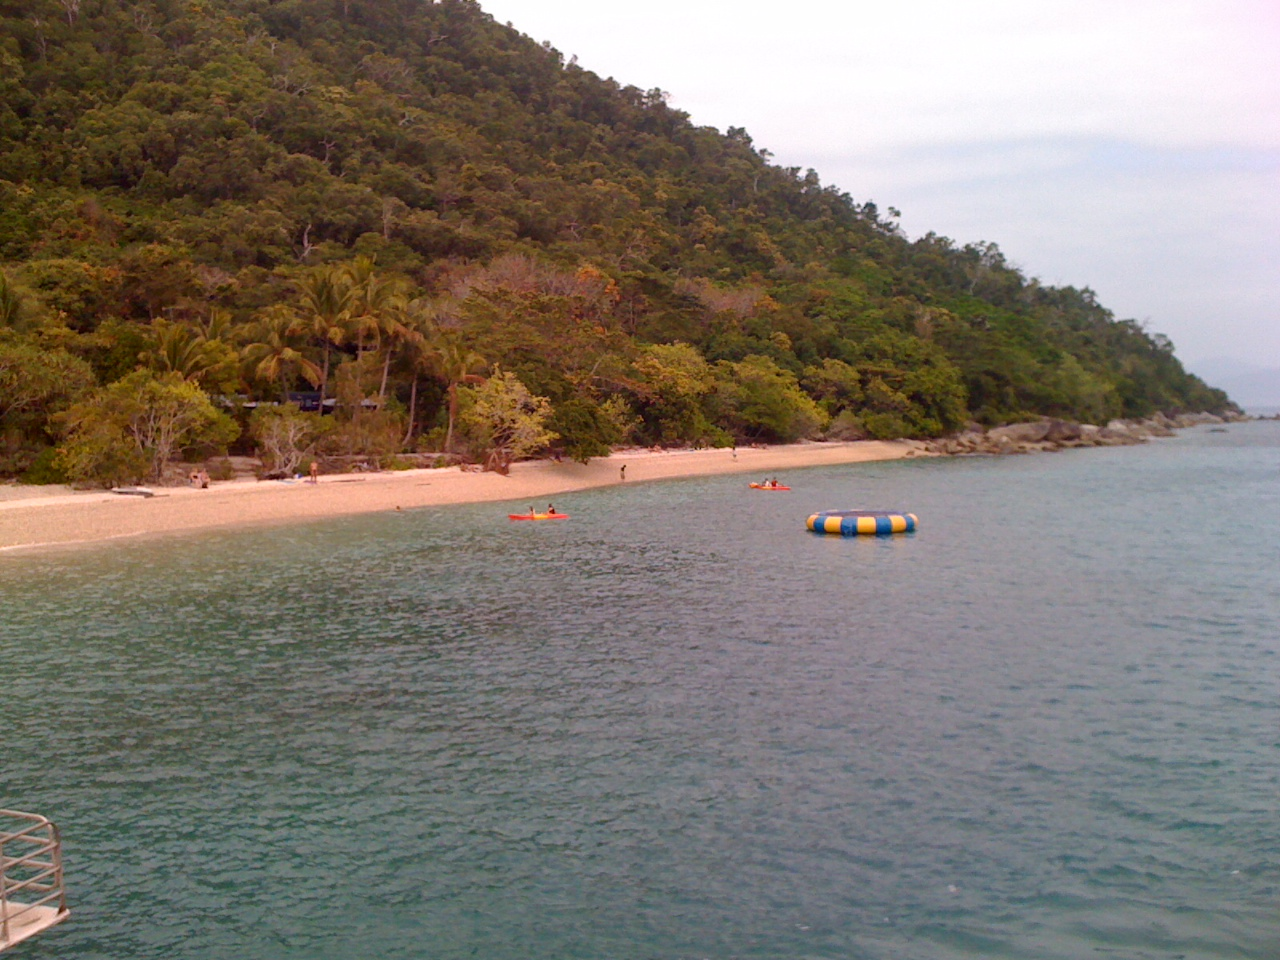 The tropical shores of Fitzroy Island, east of Cairns in the Coral Sea.